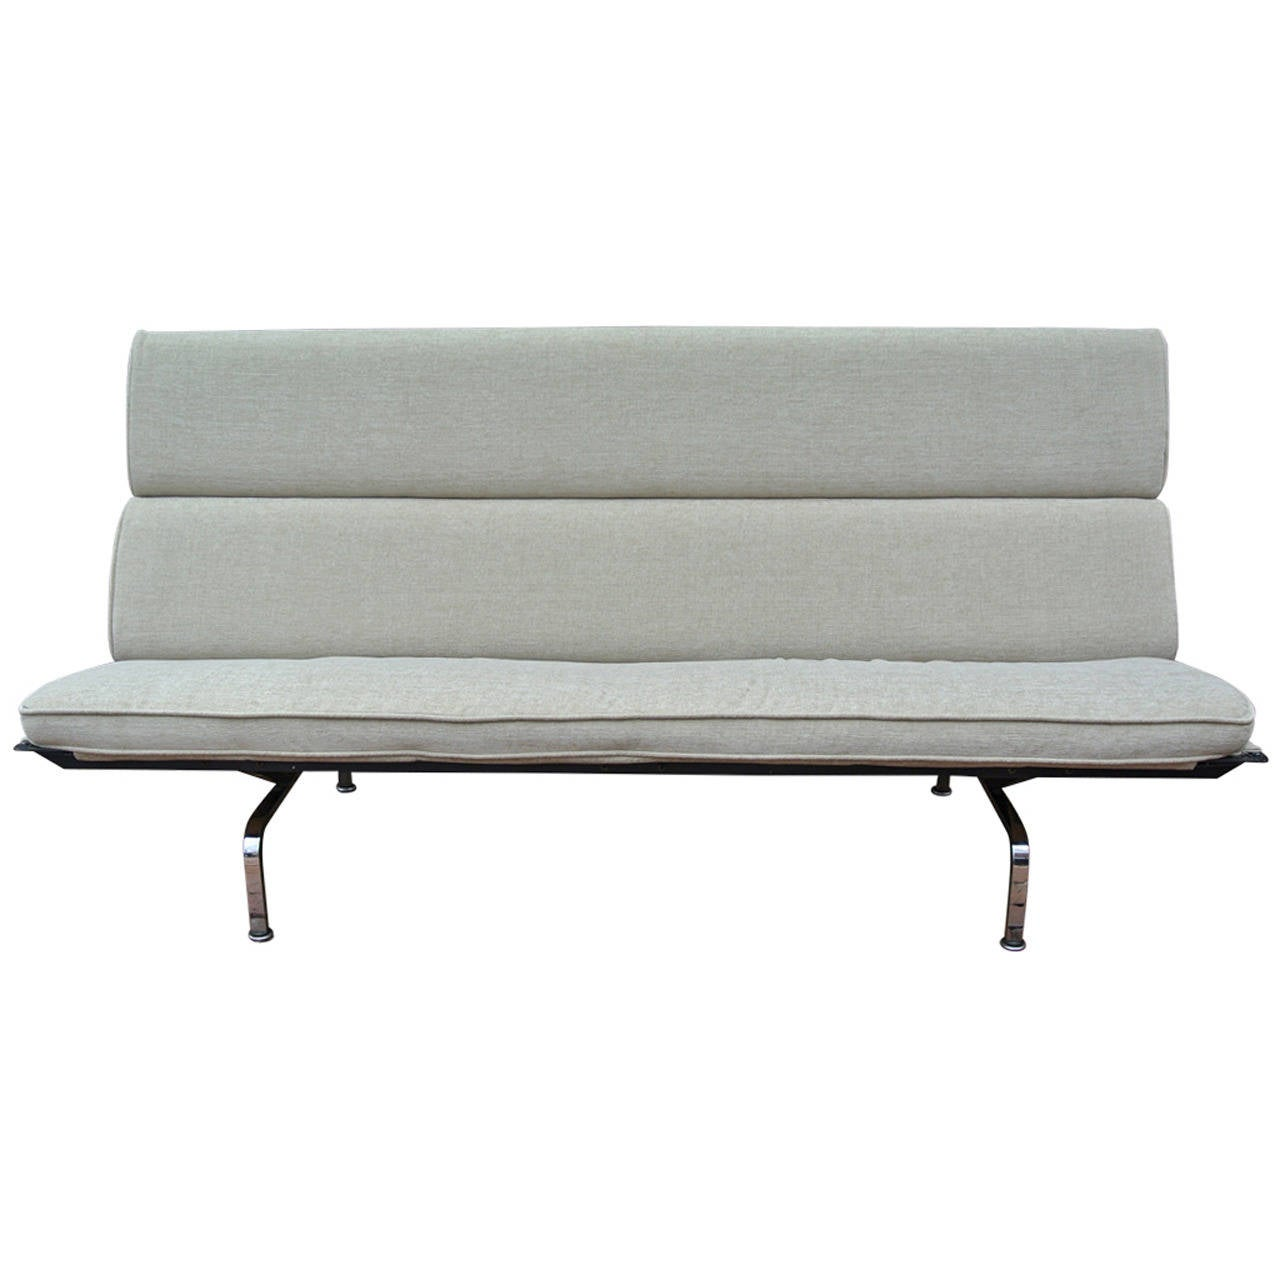 Charming Charles Eames Compact Sofa For Herman Miller 1